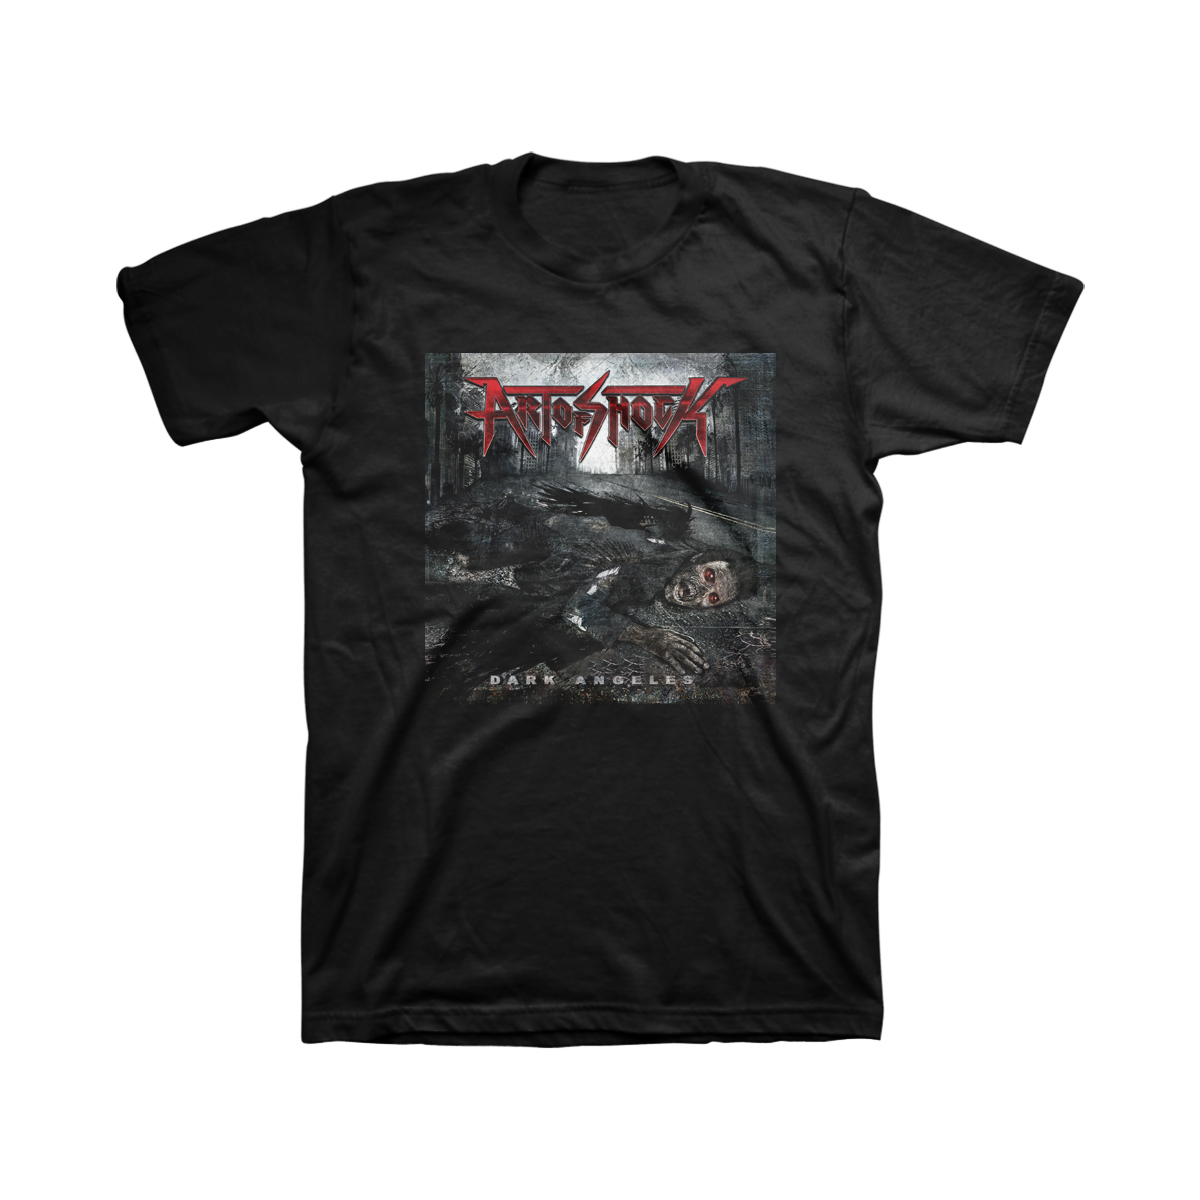 Art Of Shock - Dark Angeles T-Shirt